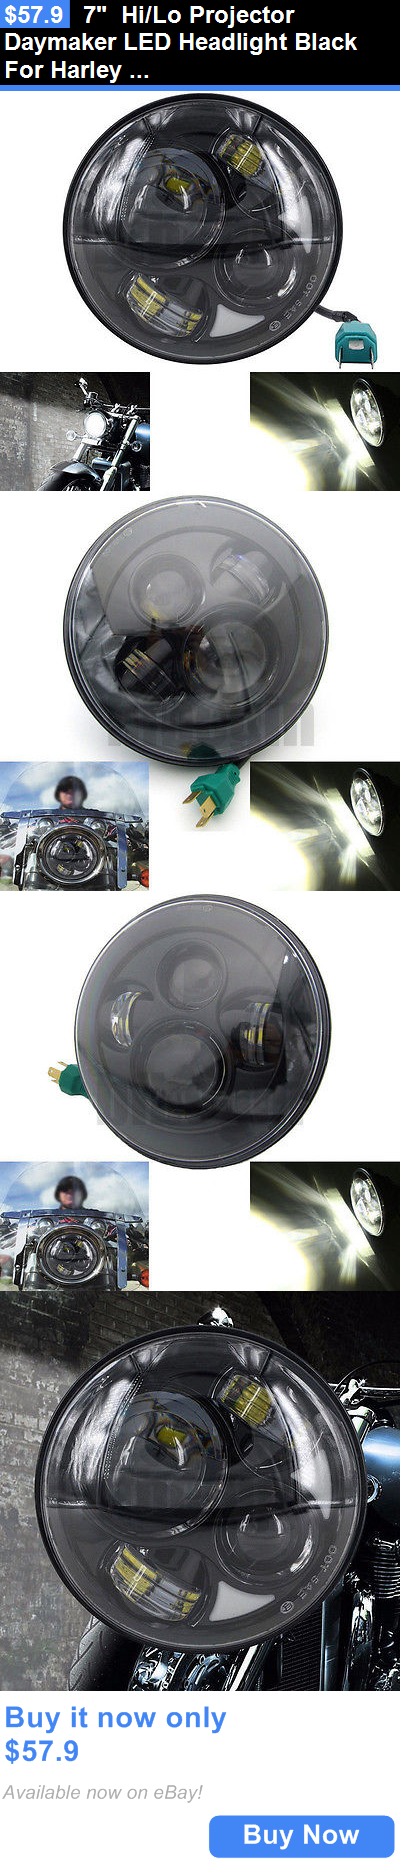 motorcycle parts: 7 Hi/Lo Projector Daymaker Led Headlight Black For Harley Street Glide Touring BUY IT NOW ONLY: $57.9